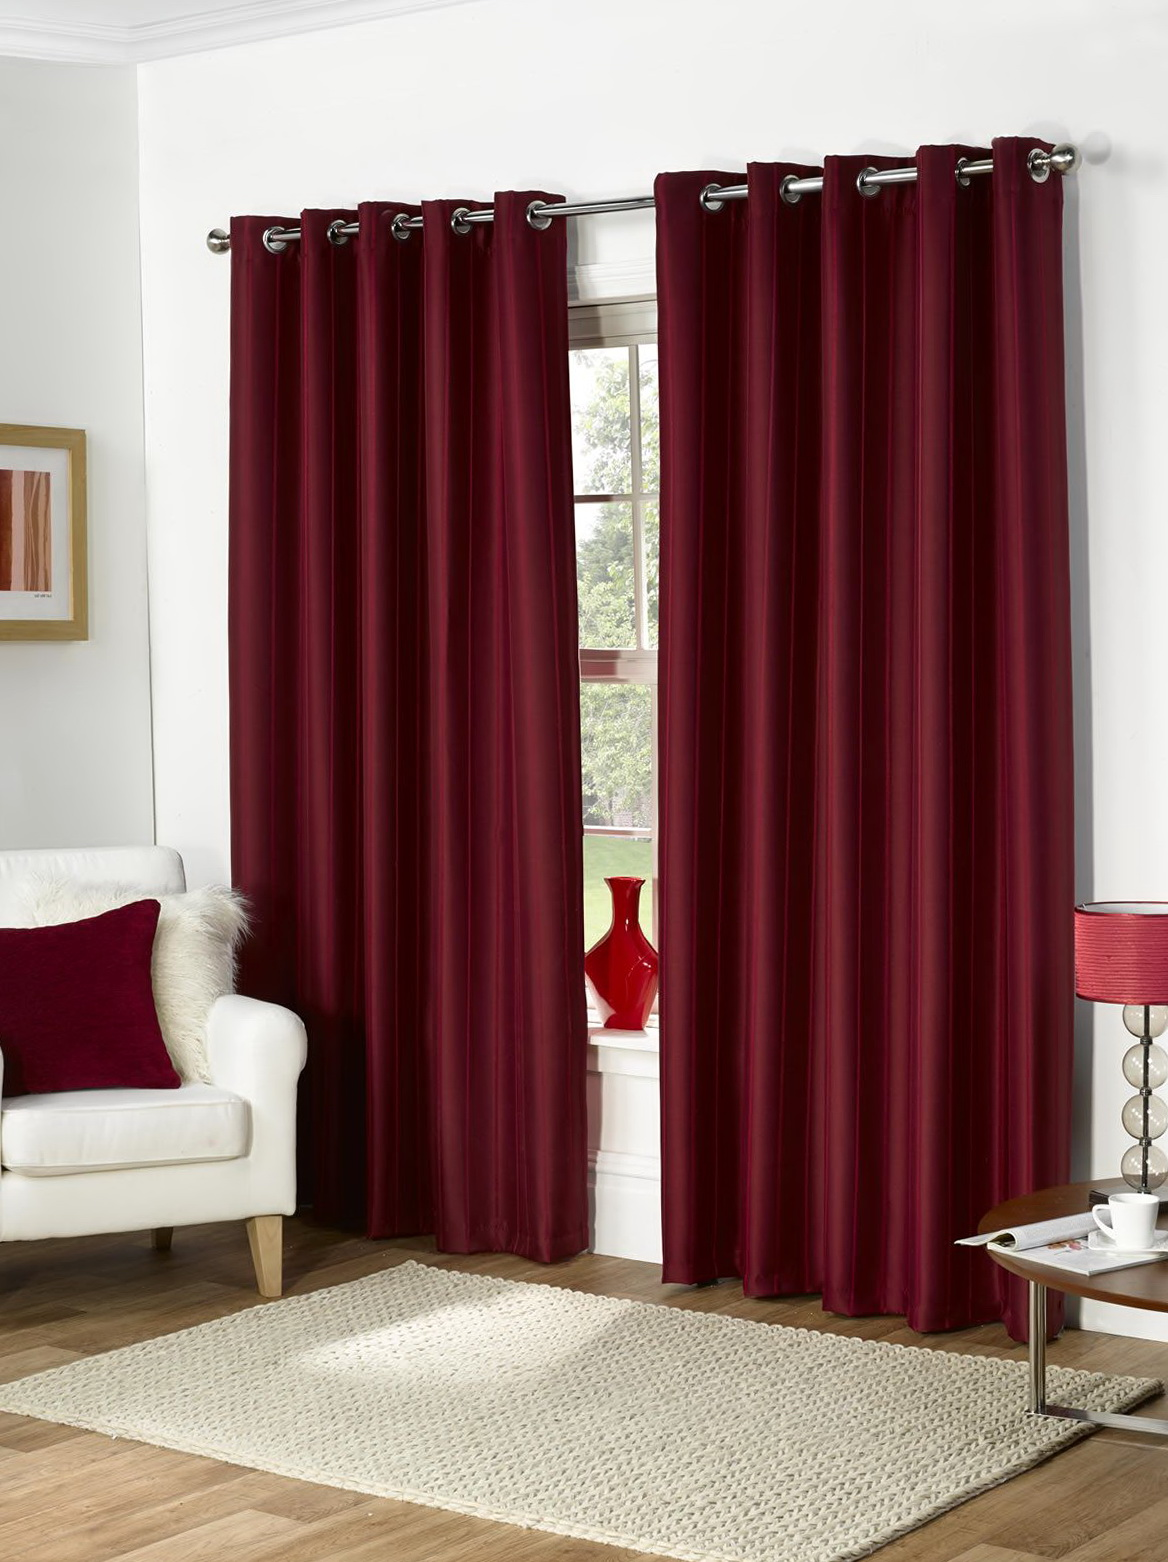 Ring Top Curtains 90x90